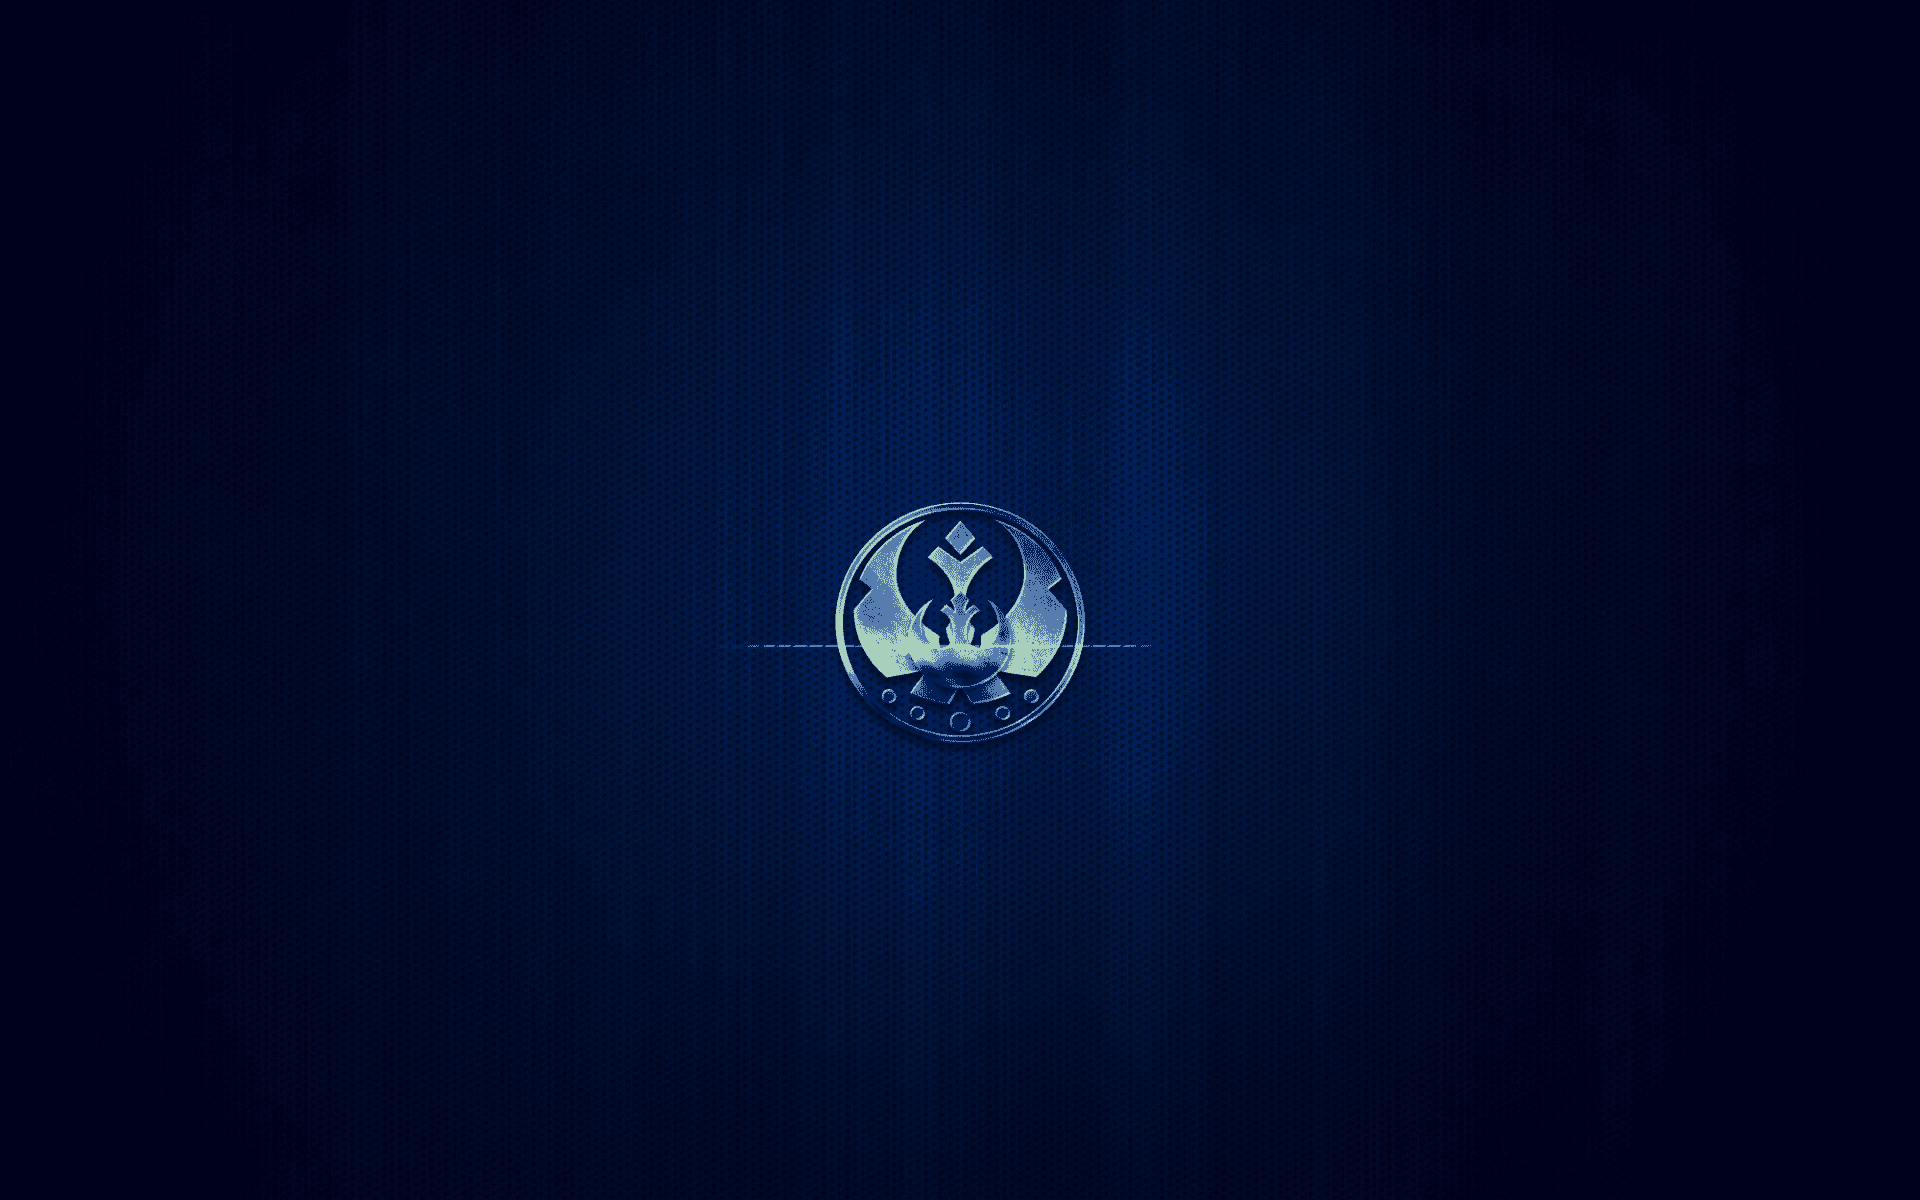 Star Wars Wallpaper 003